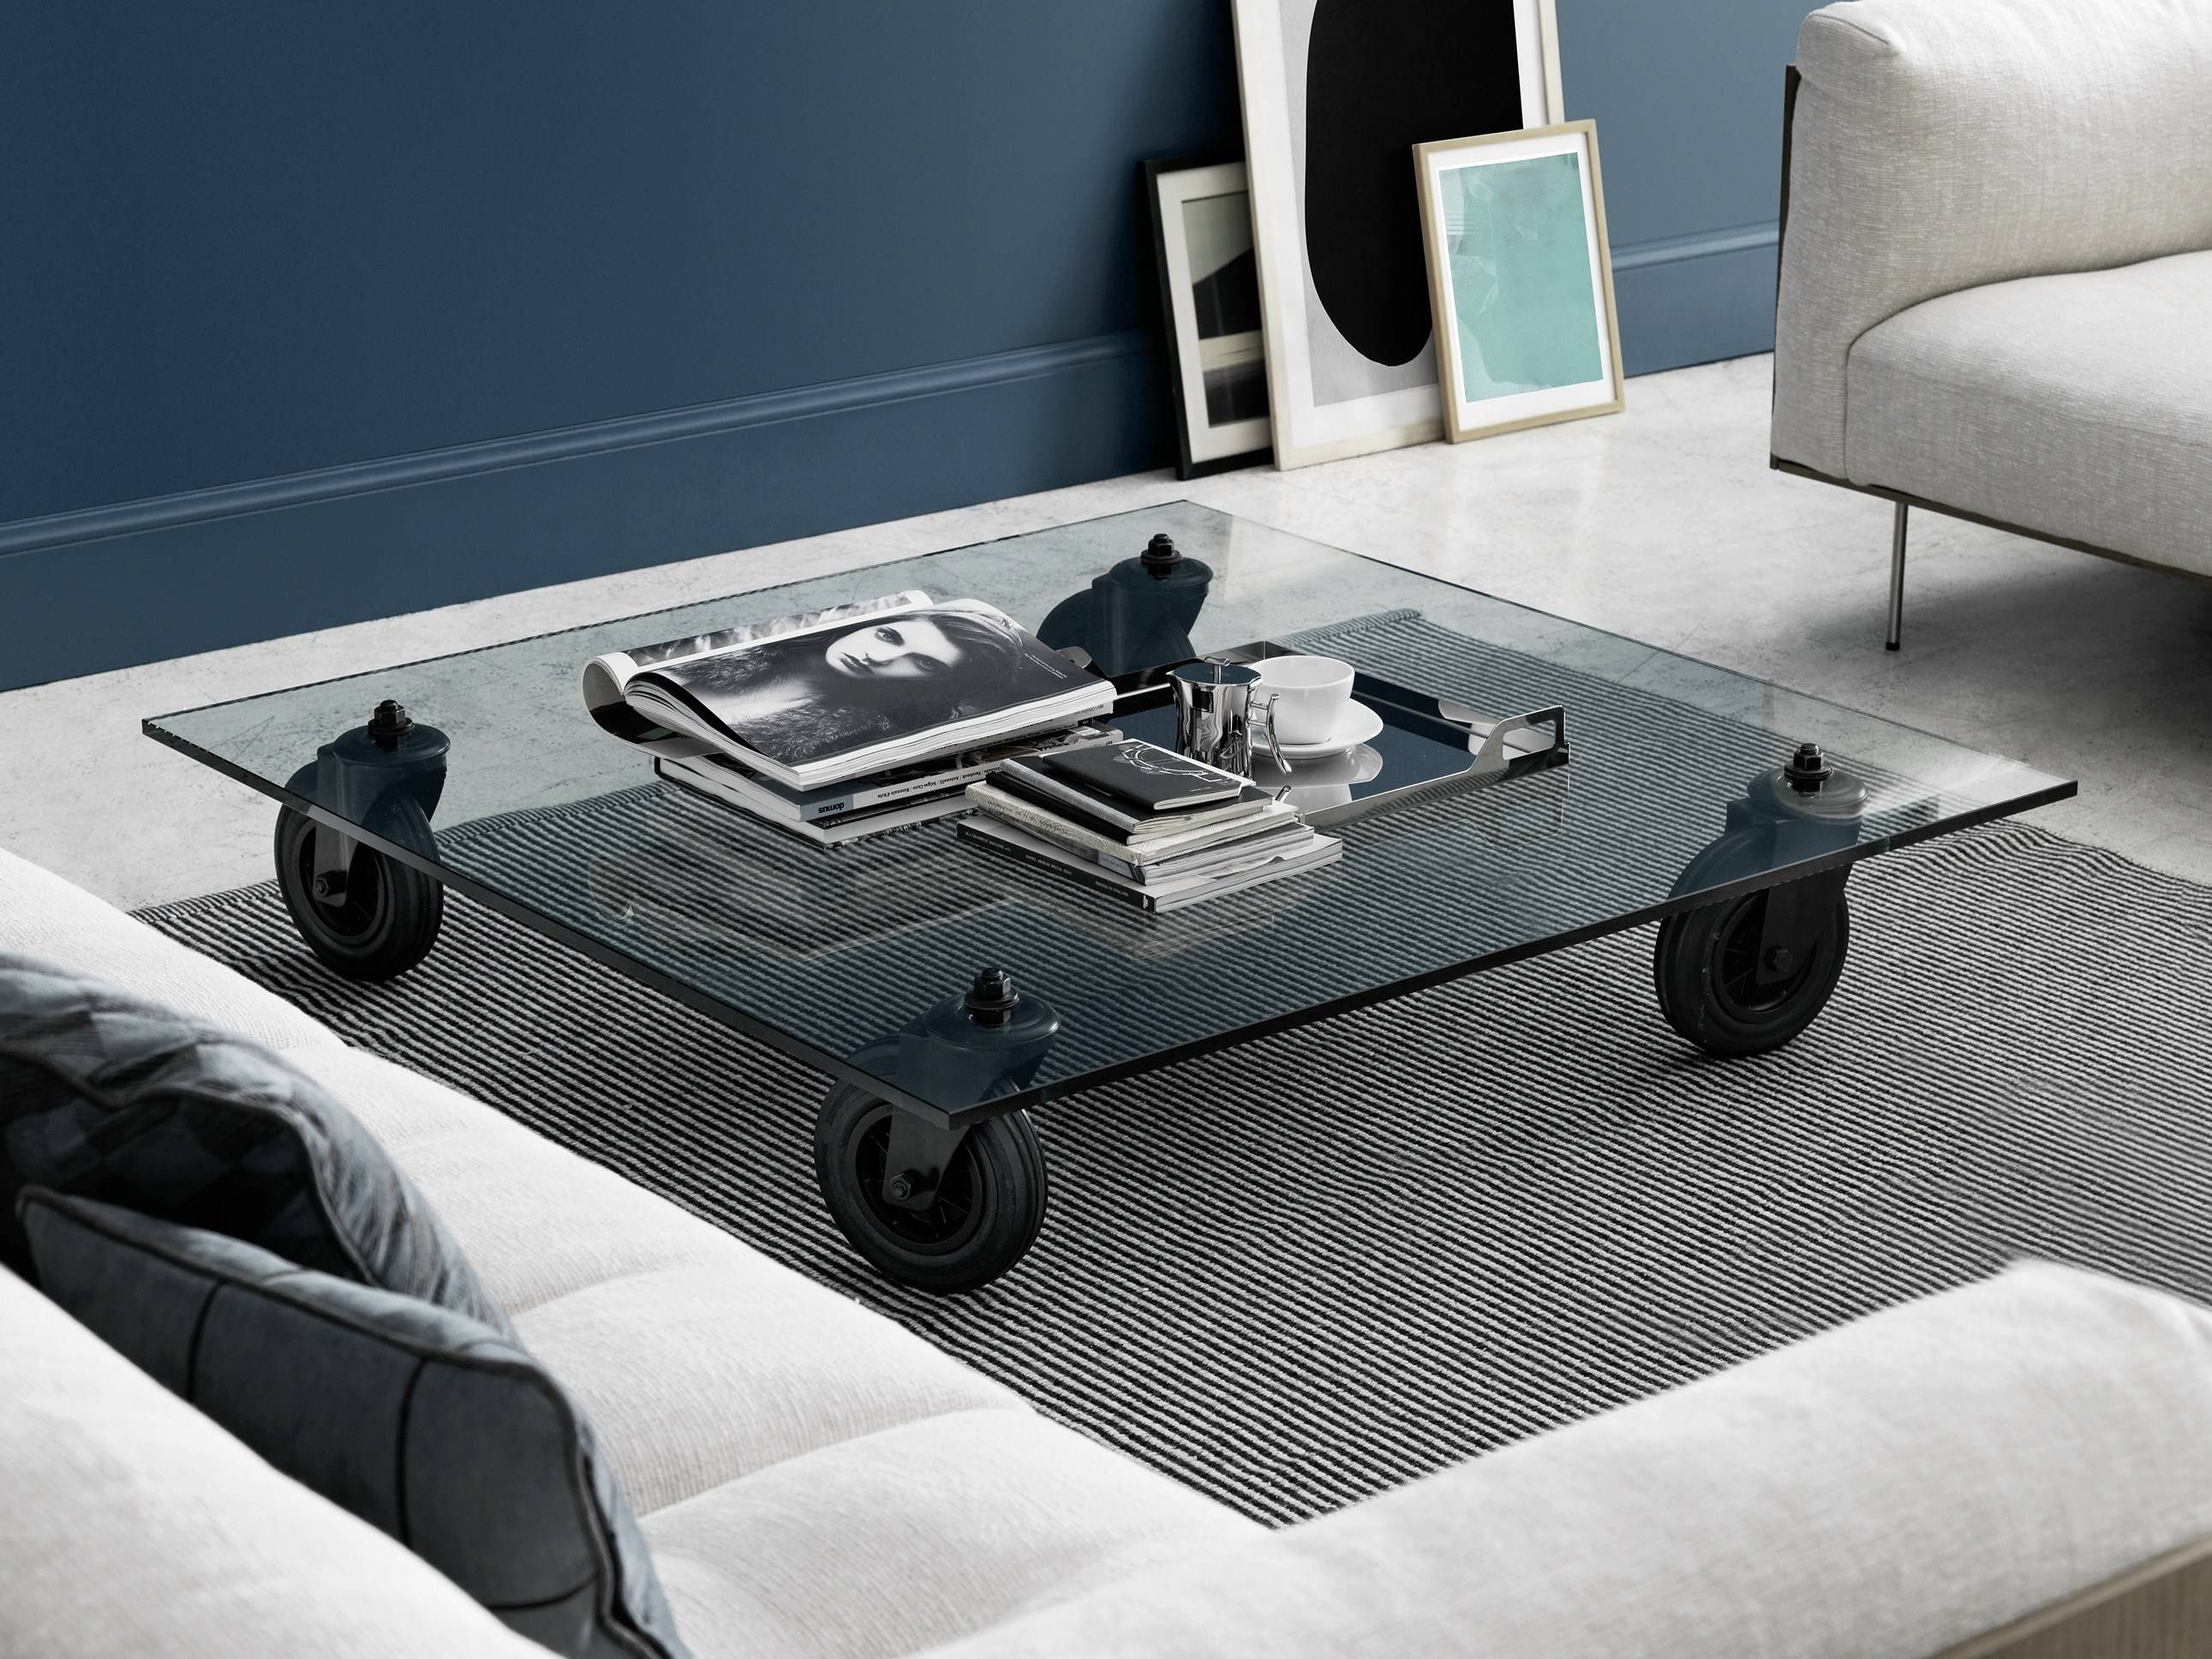 Square Float Glass Coffee Table With Casters Tavolo Con Ruote intended for Glass Coffee Tables With Casters (Image 26 of 30)